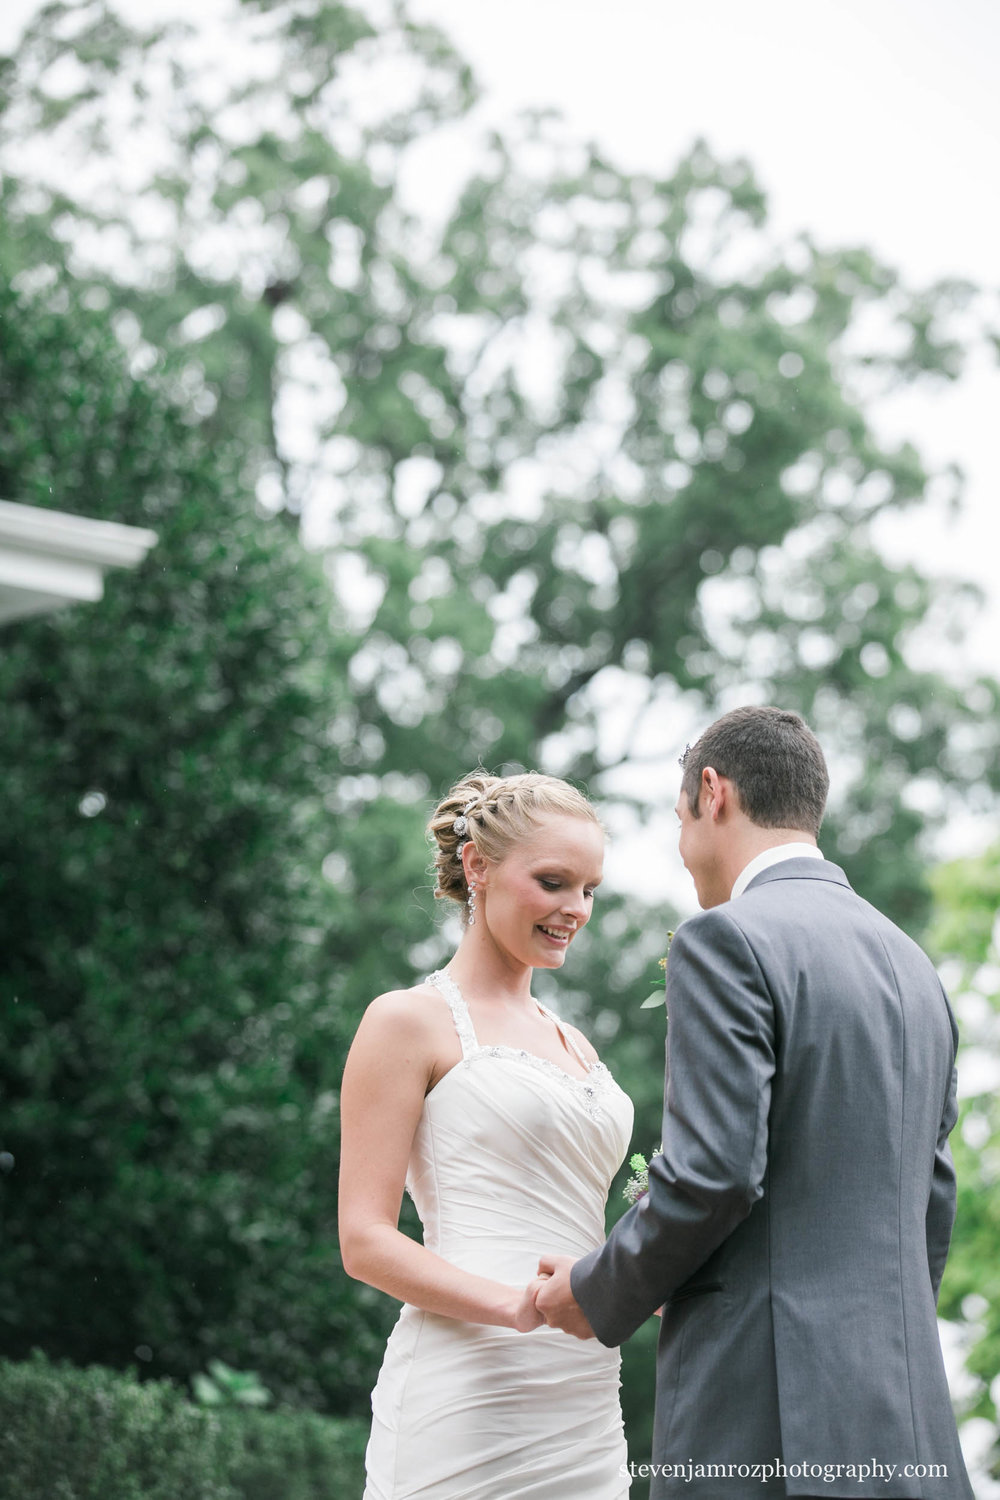 holding-hands-first-look-raleigh-steven-jamroz-photography-0302.jpg